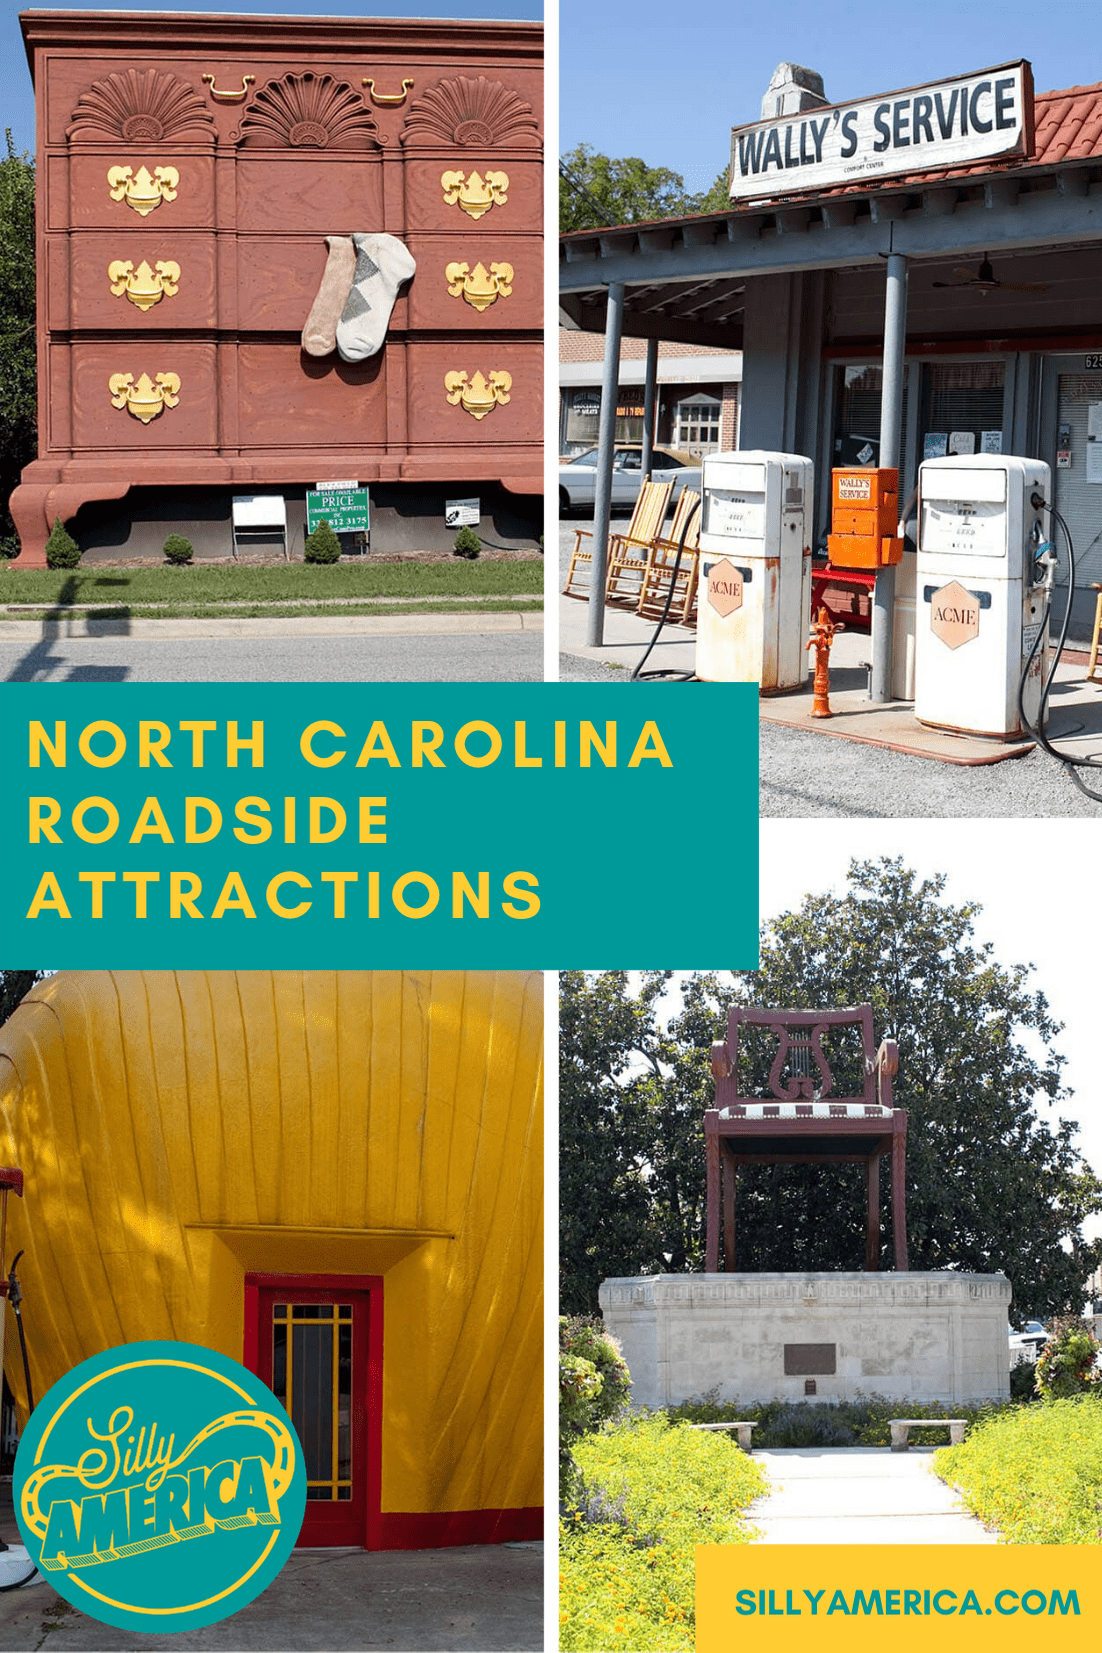 The best North Carolina roadside attractions to visit on a North Carolina road trip. Add these roadside oddities to your travel bucket list, itinerary, or route map! Perfect road trip stops for kids or adults! #NorthCarolinaRoadsideAttractions #NorthCarolinaRoadsideAttraction #RoadsideAttractions #RoadsideAttraction #RoadTrip #NorthCarolinaRoadTrip #NorthCarolinaRoadTripBucketLists #NorthCarolinaBucketList #NorthCarolinaRoadTripWIthKids #NorthCarolinaRoadTripTravelGuide